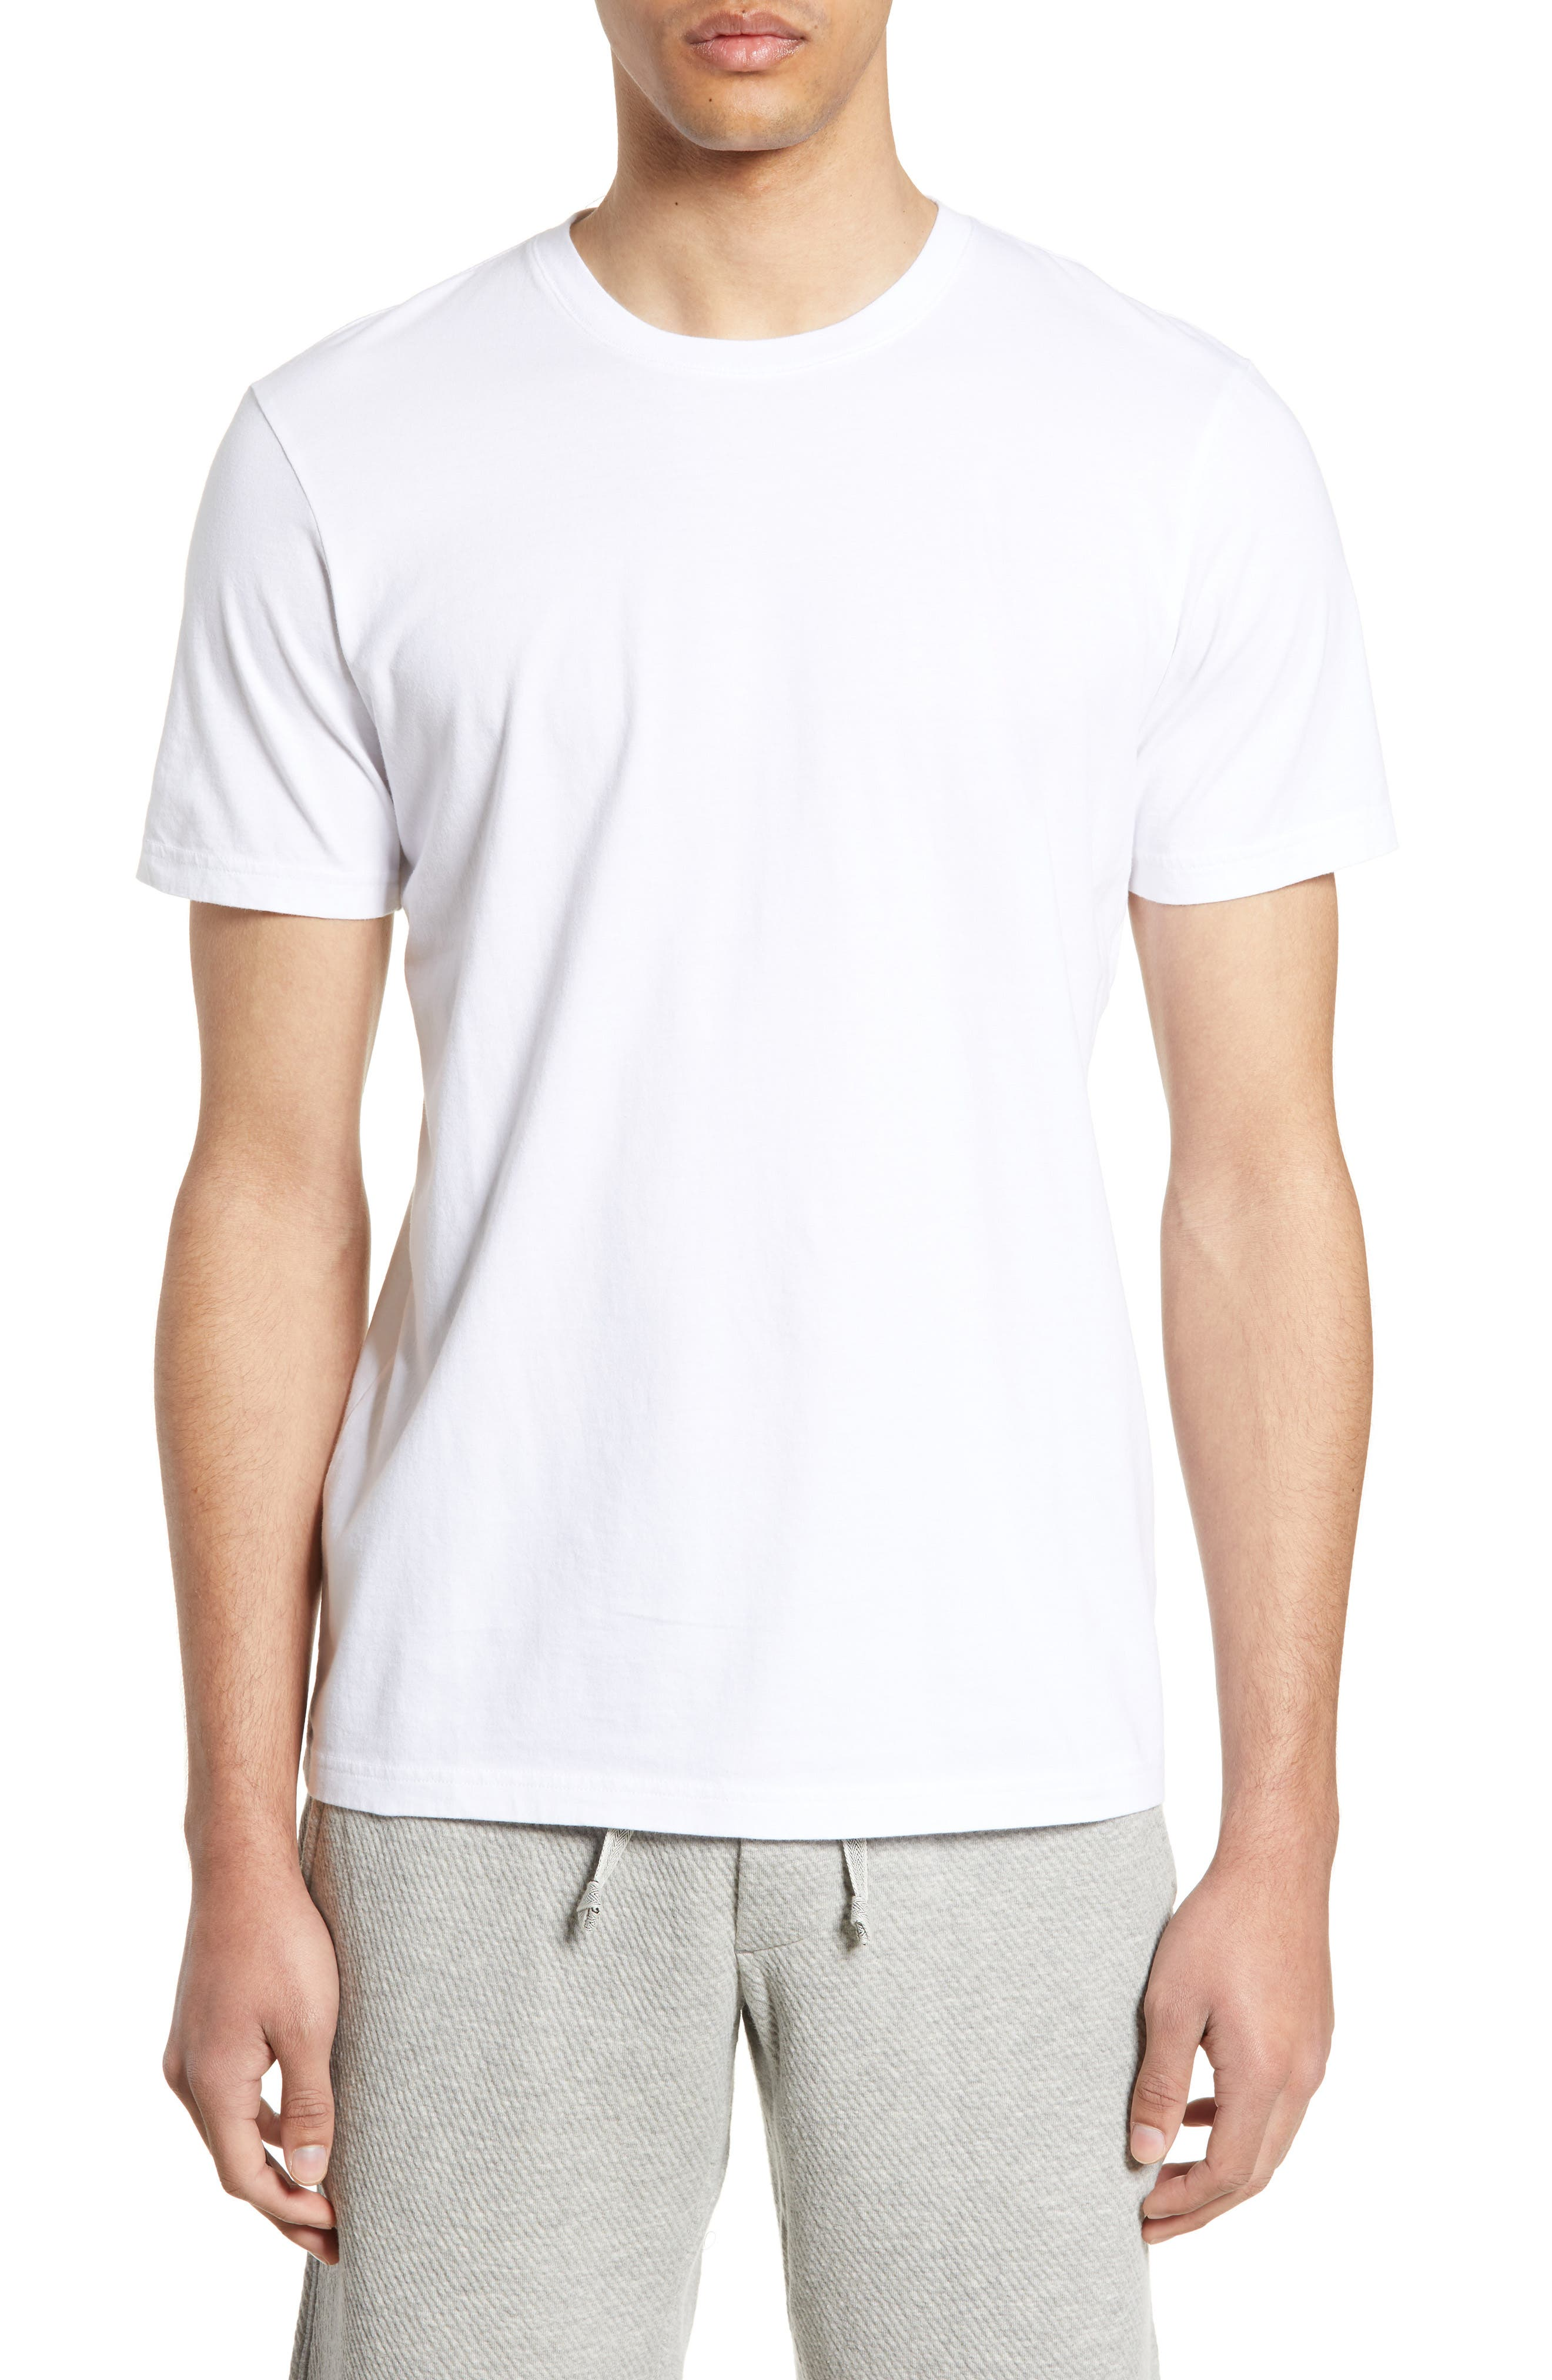 WINGS + HORNS, Short Sleeve Crewneck T-Shirt, Main thumbnail 1, color, WHITE